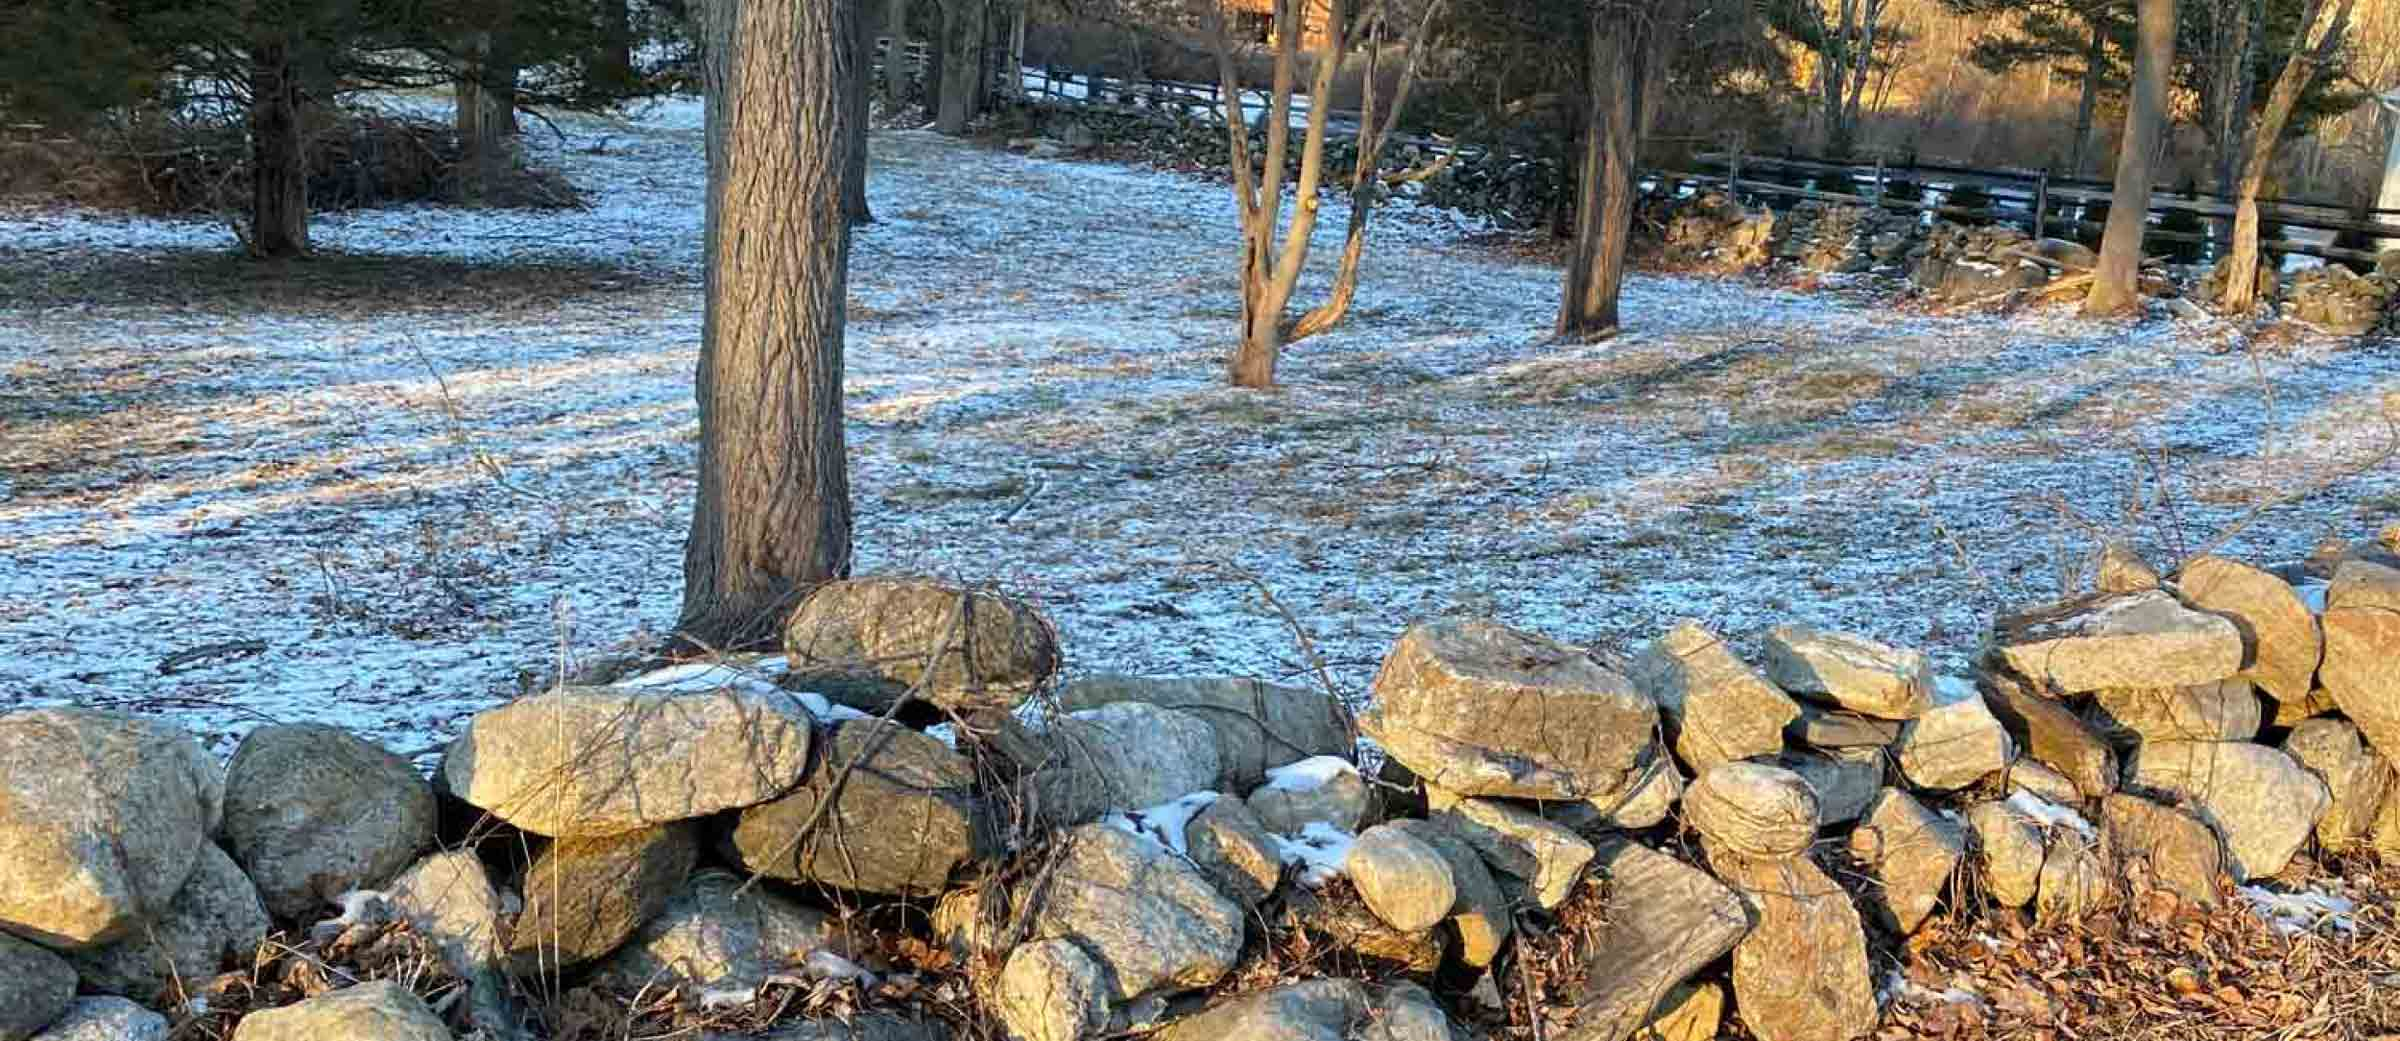 We specialize in expertly and affordably restoring dry stone walls